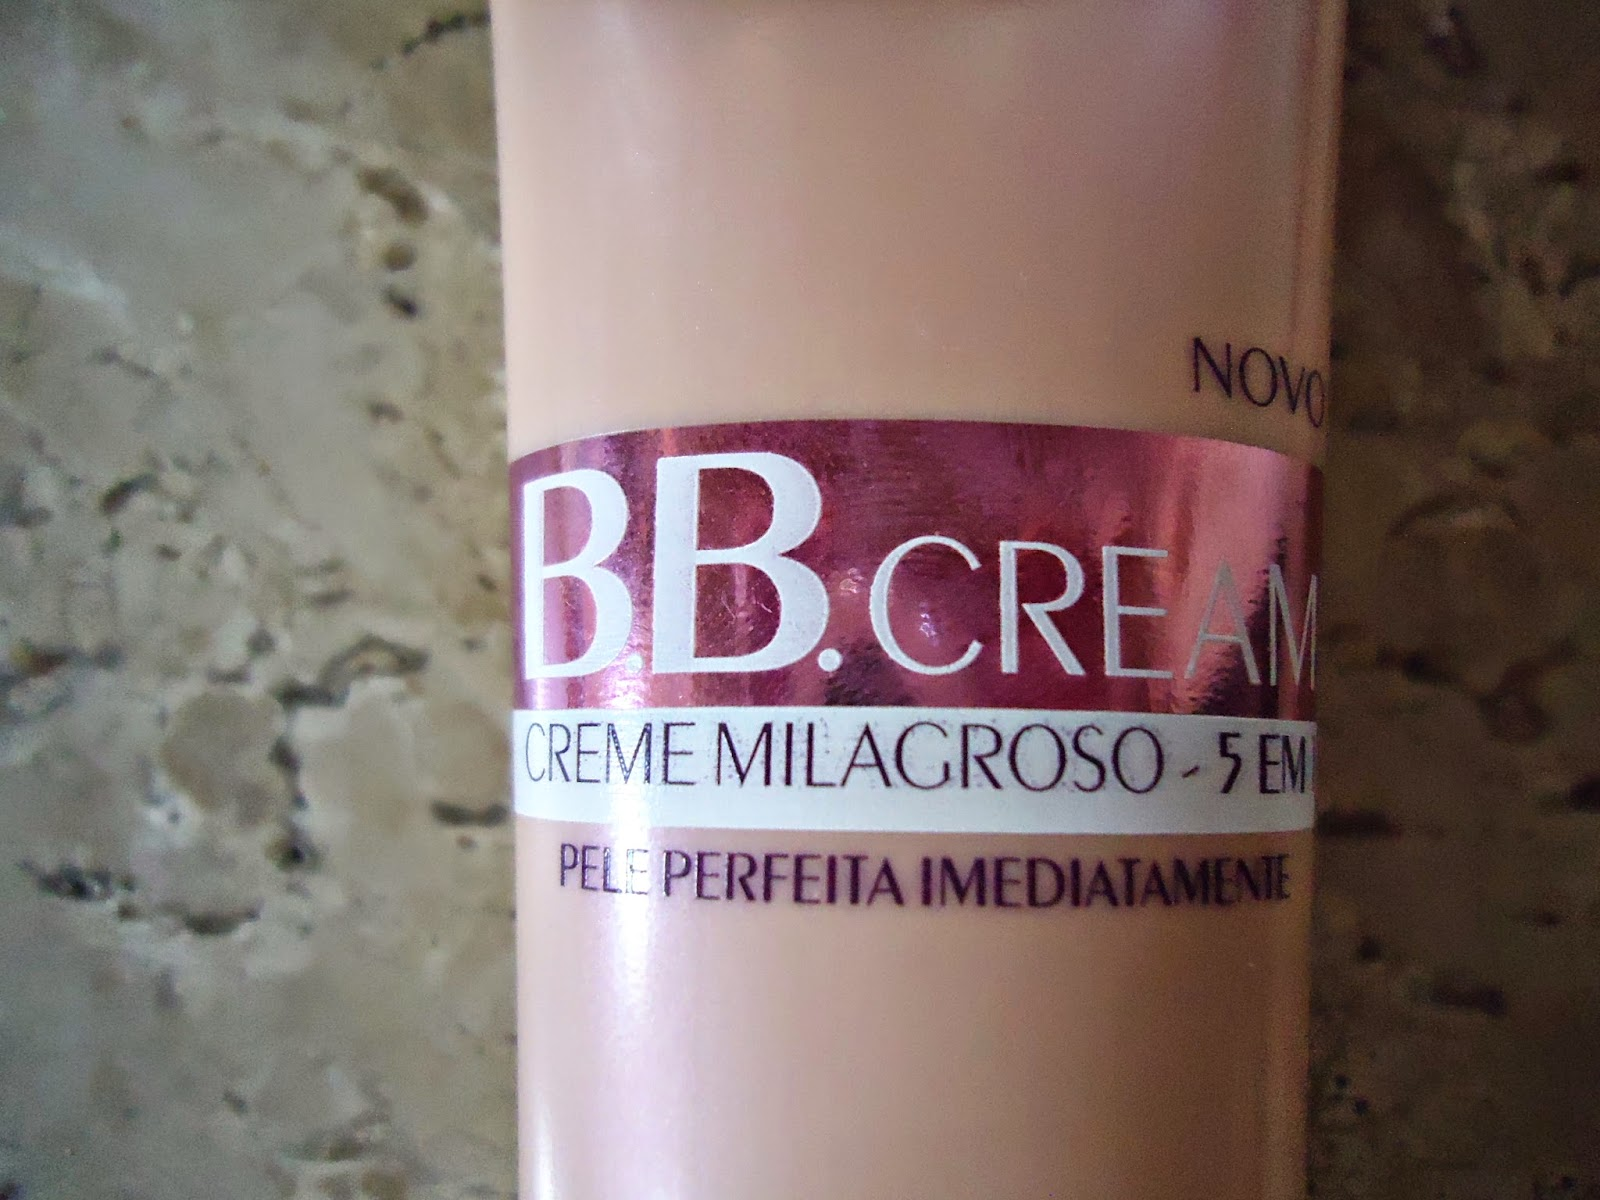 BB Cream Loreal paria, testei